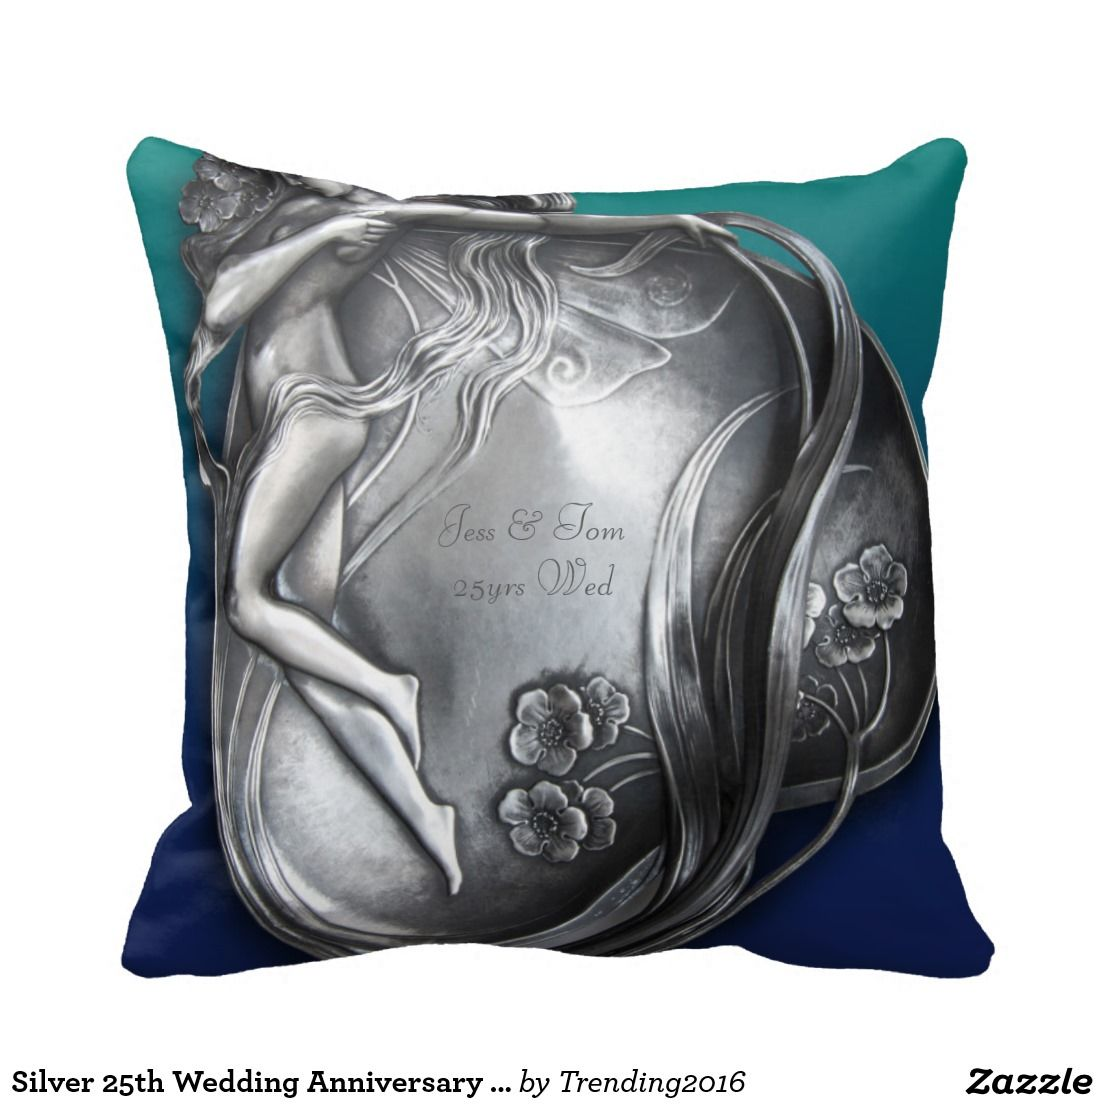 Silver th wedding anniversary arty fairy pillows gift ideas